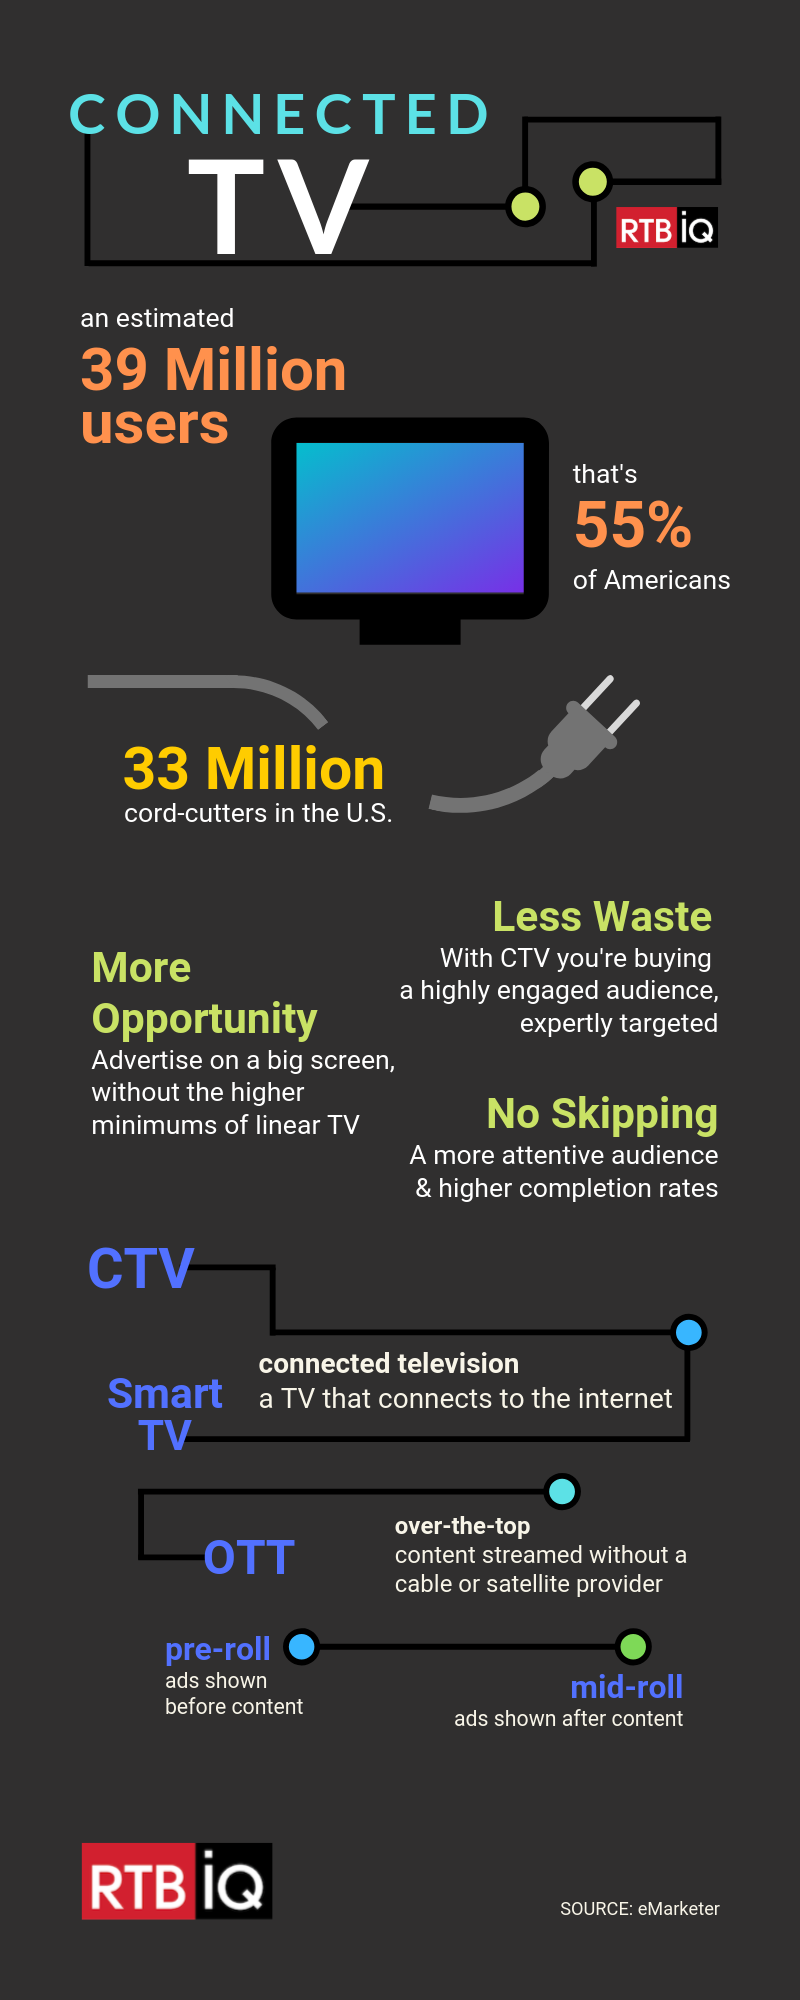 """Connected TV infographic with text overlay """"an estimated 39 million users; that's 55% of Americans; 33 million cord-cutters in the U.S.; Less waste with CTV you are buying a highly engaged audience, expertly targeted, more opportunity advertise on a big screen without the higher minimums of linear TV, no skipping a more attentive audience & higher completion rates; CTV connected television a TV that connects to the internet, Smart TV, OTT over-the-top content streamed without a cable or satellite provider, pre-roll ads shown before content, mid-roll ads shown after content"""